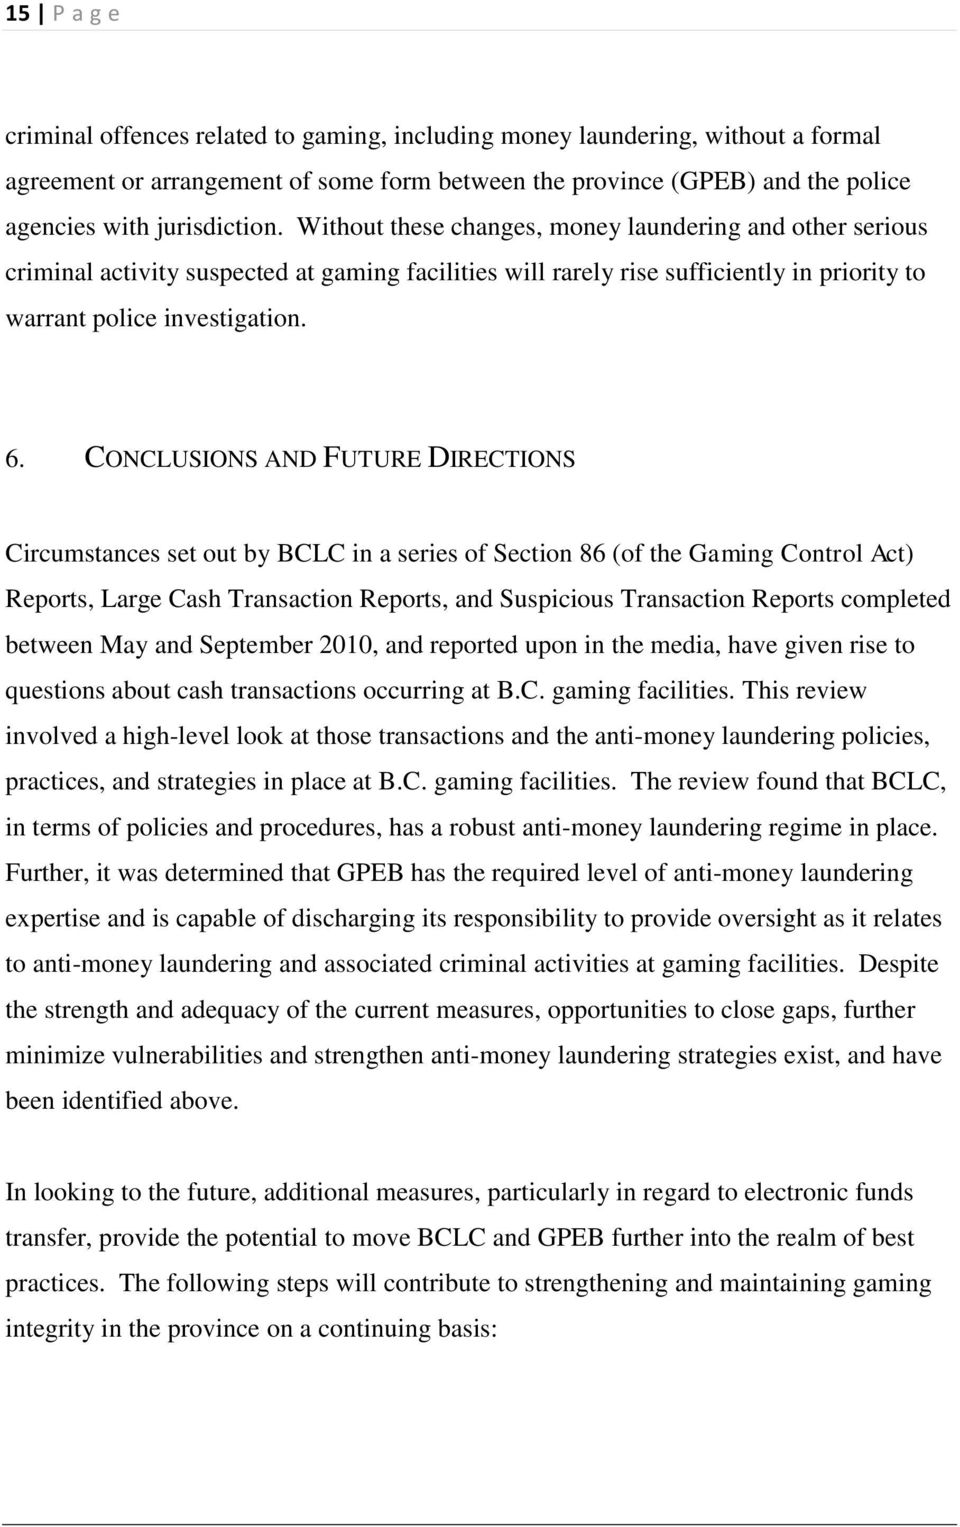 CONCLUSIONS AND FUTURE DIRECTIONS Circumstances set out by BCLC in a series of Section 86 (of the Gaming Control Act) Reports, Large Cash Transaction Reports, and Suspicious Transaction Reports